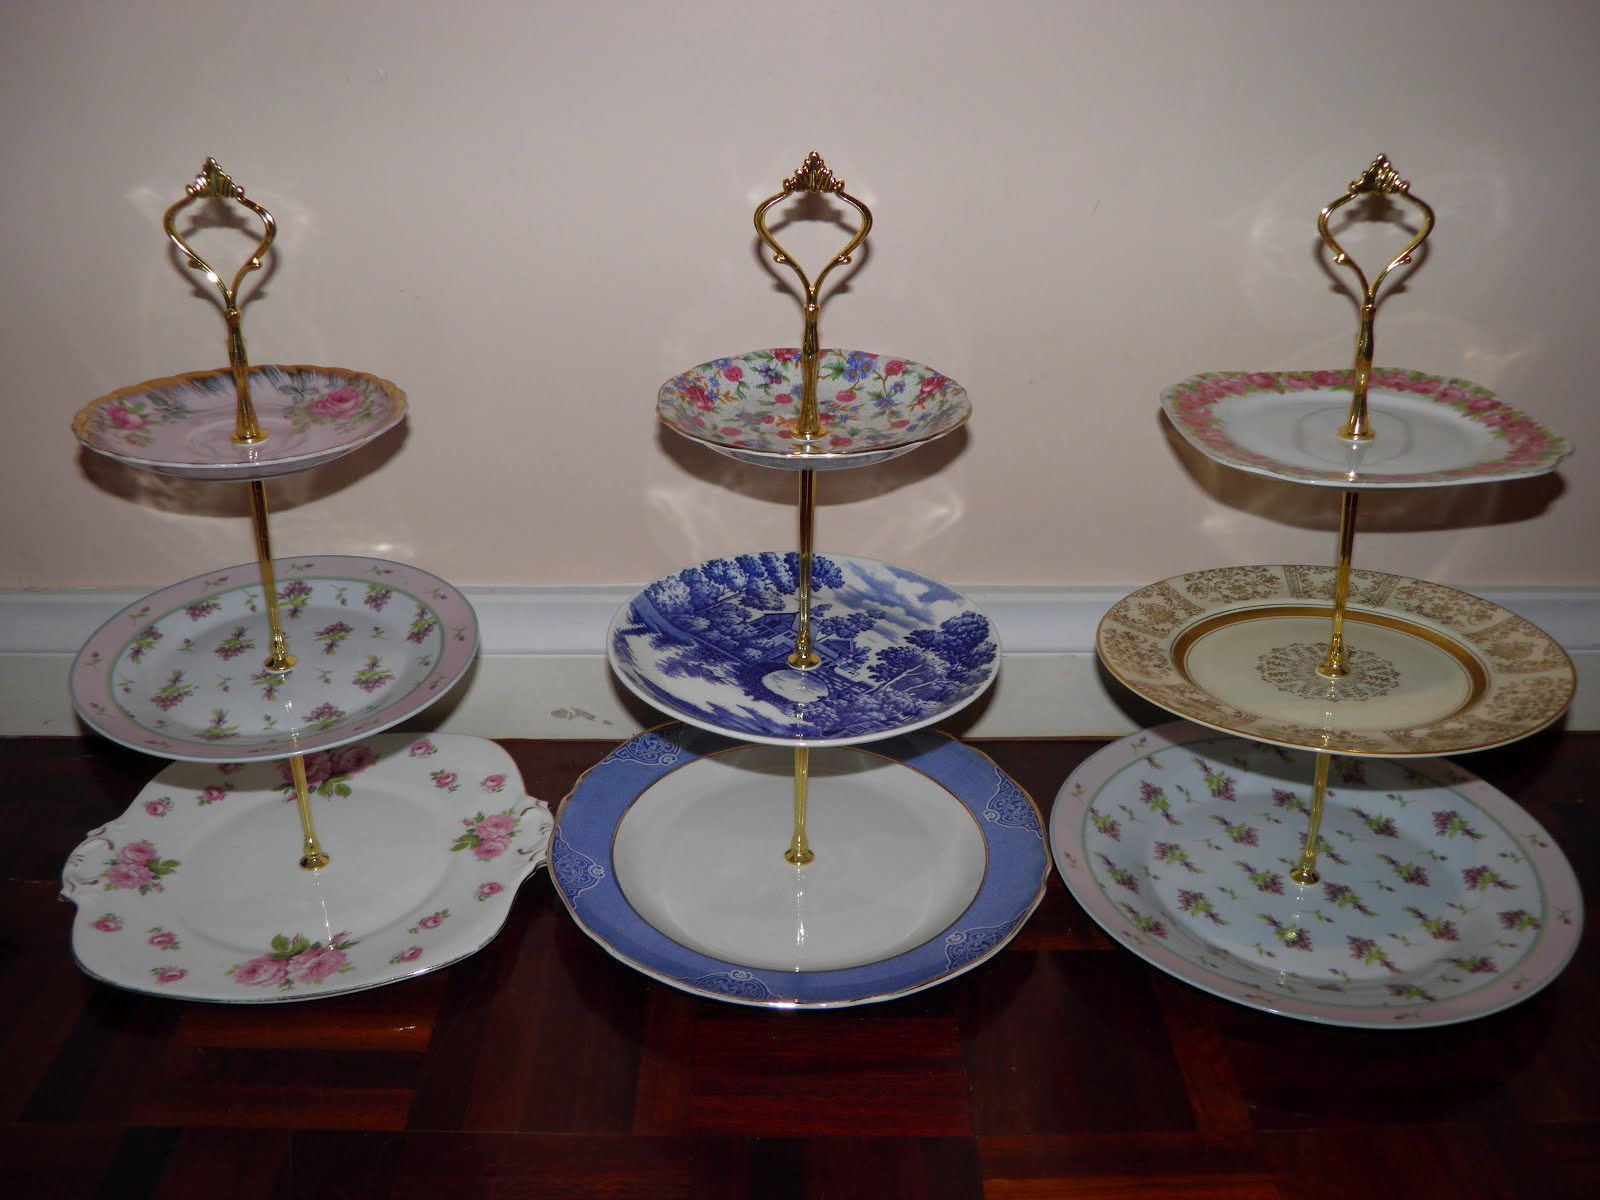 Diy Tiered Cake Stand Hardware